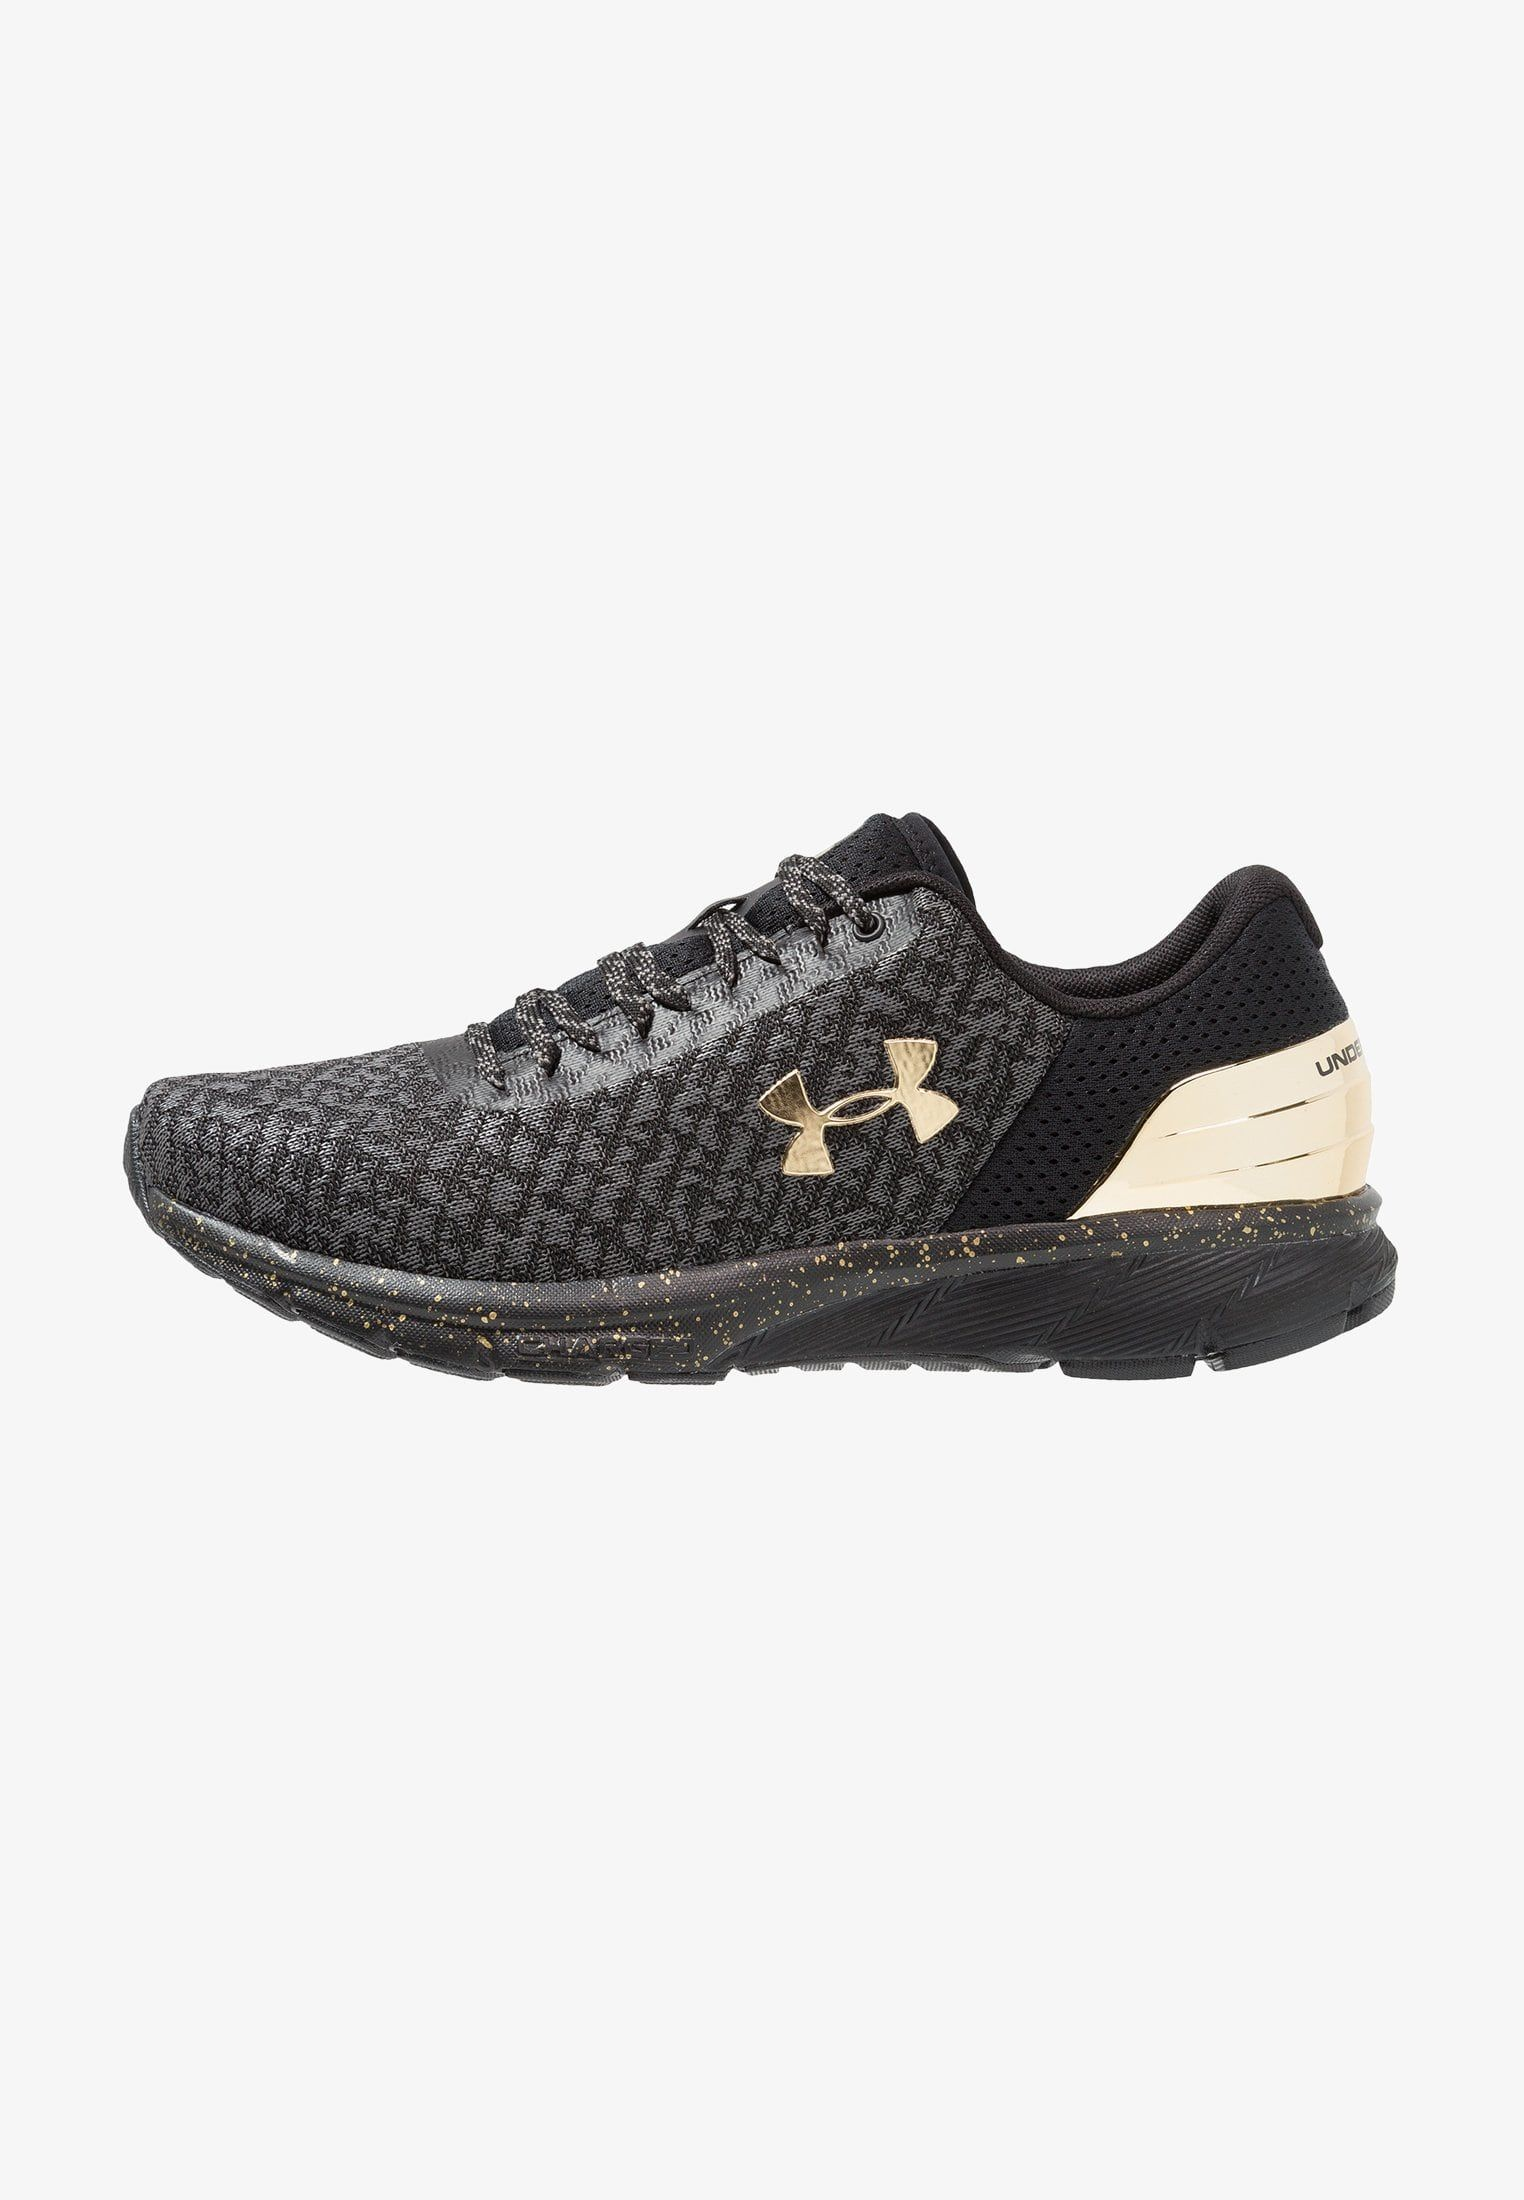 Under Armour Charged Escape 2 Chrome Obuwie Do Biegania Treningowe Black Graphite Metallic Gold Shoes Underarmor Sneaker Sneakers